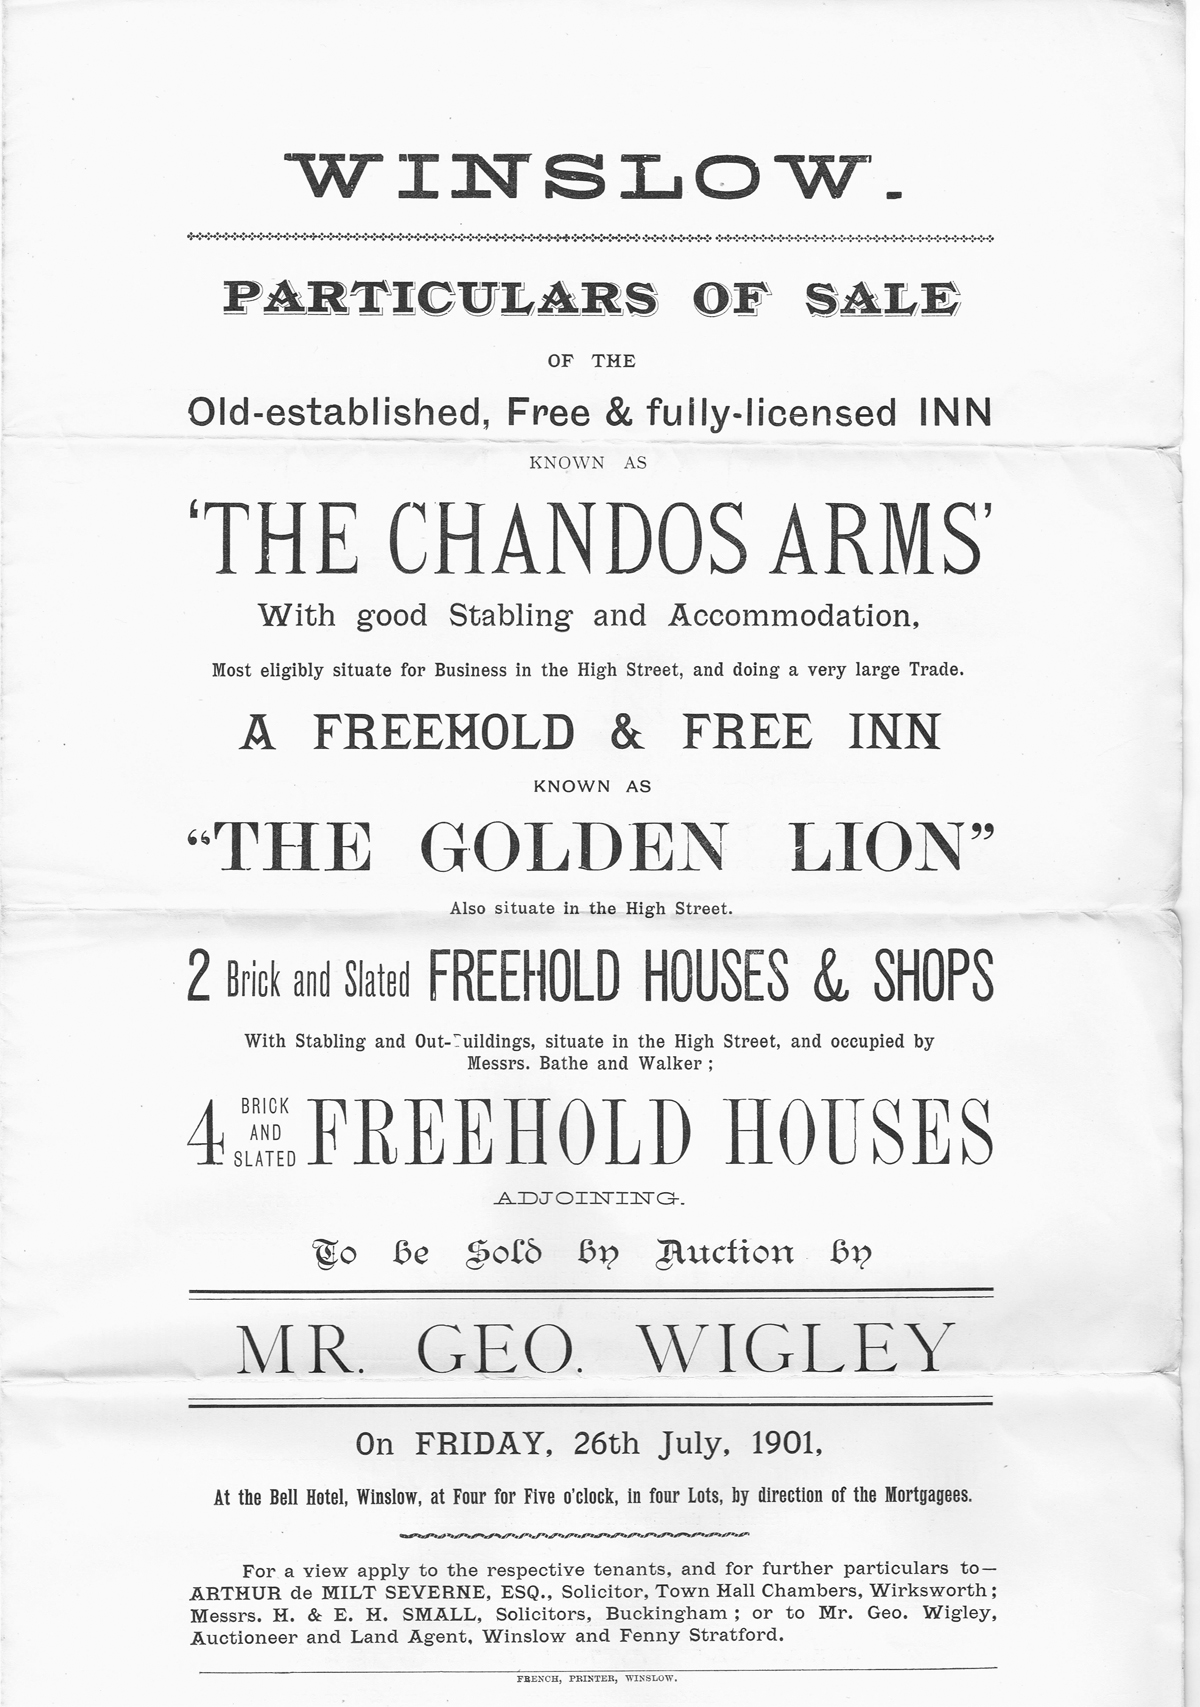 Sale poster for Chandos Arms and Golden Lion